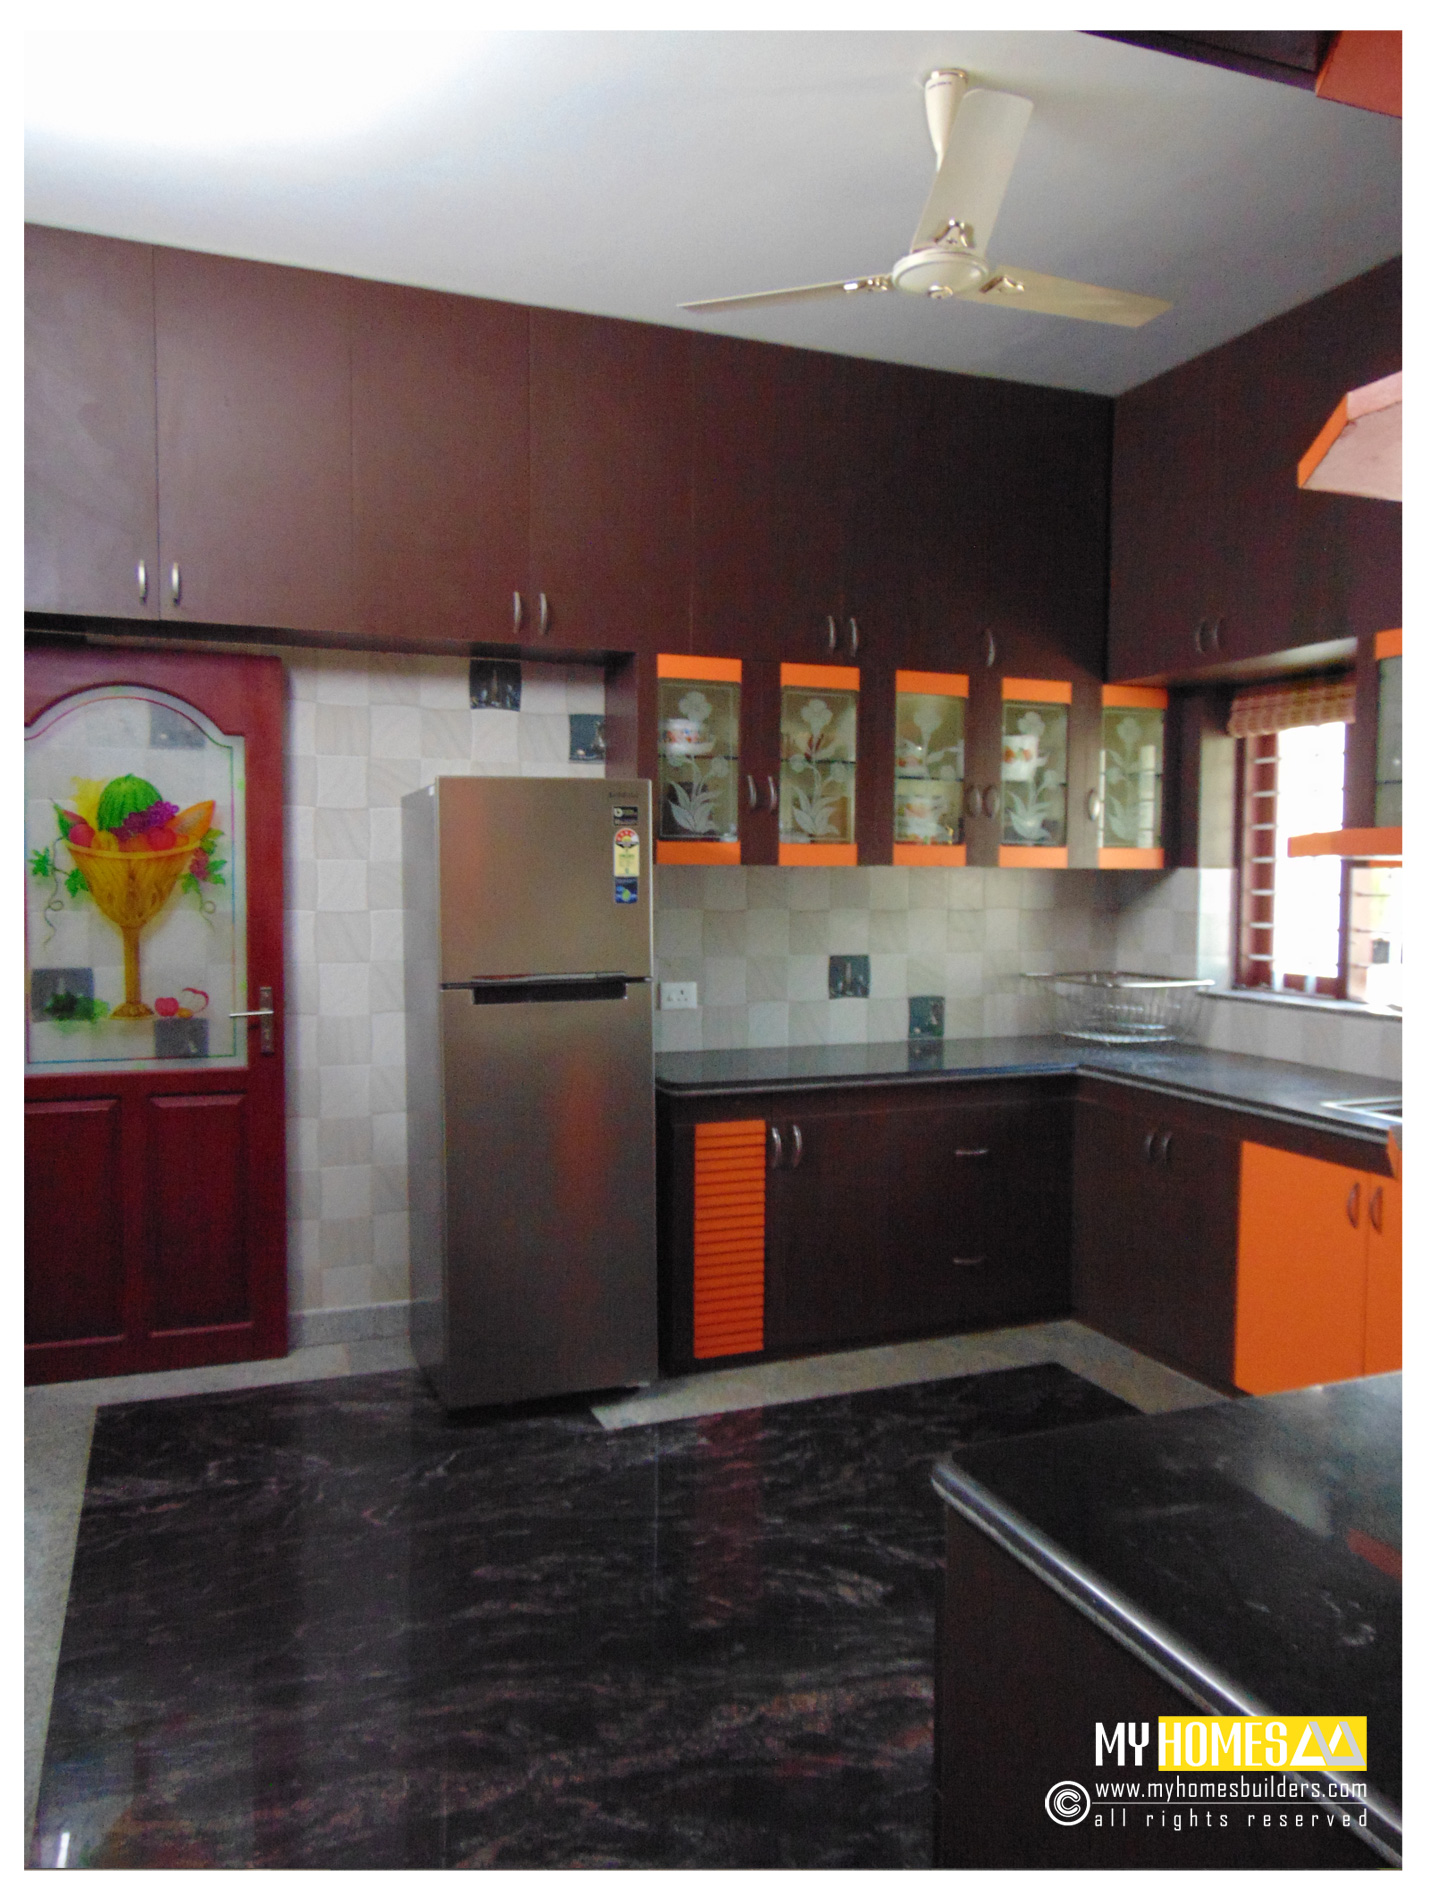 Kerala kitchen designs idea in modular style for house in for New kitchen designs in kerala